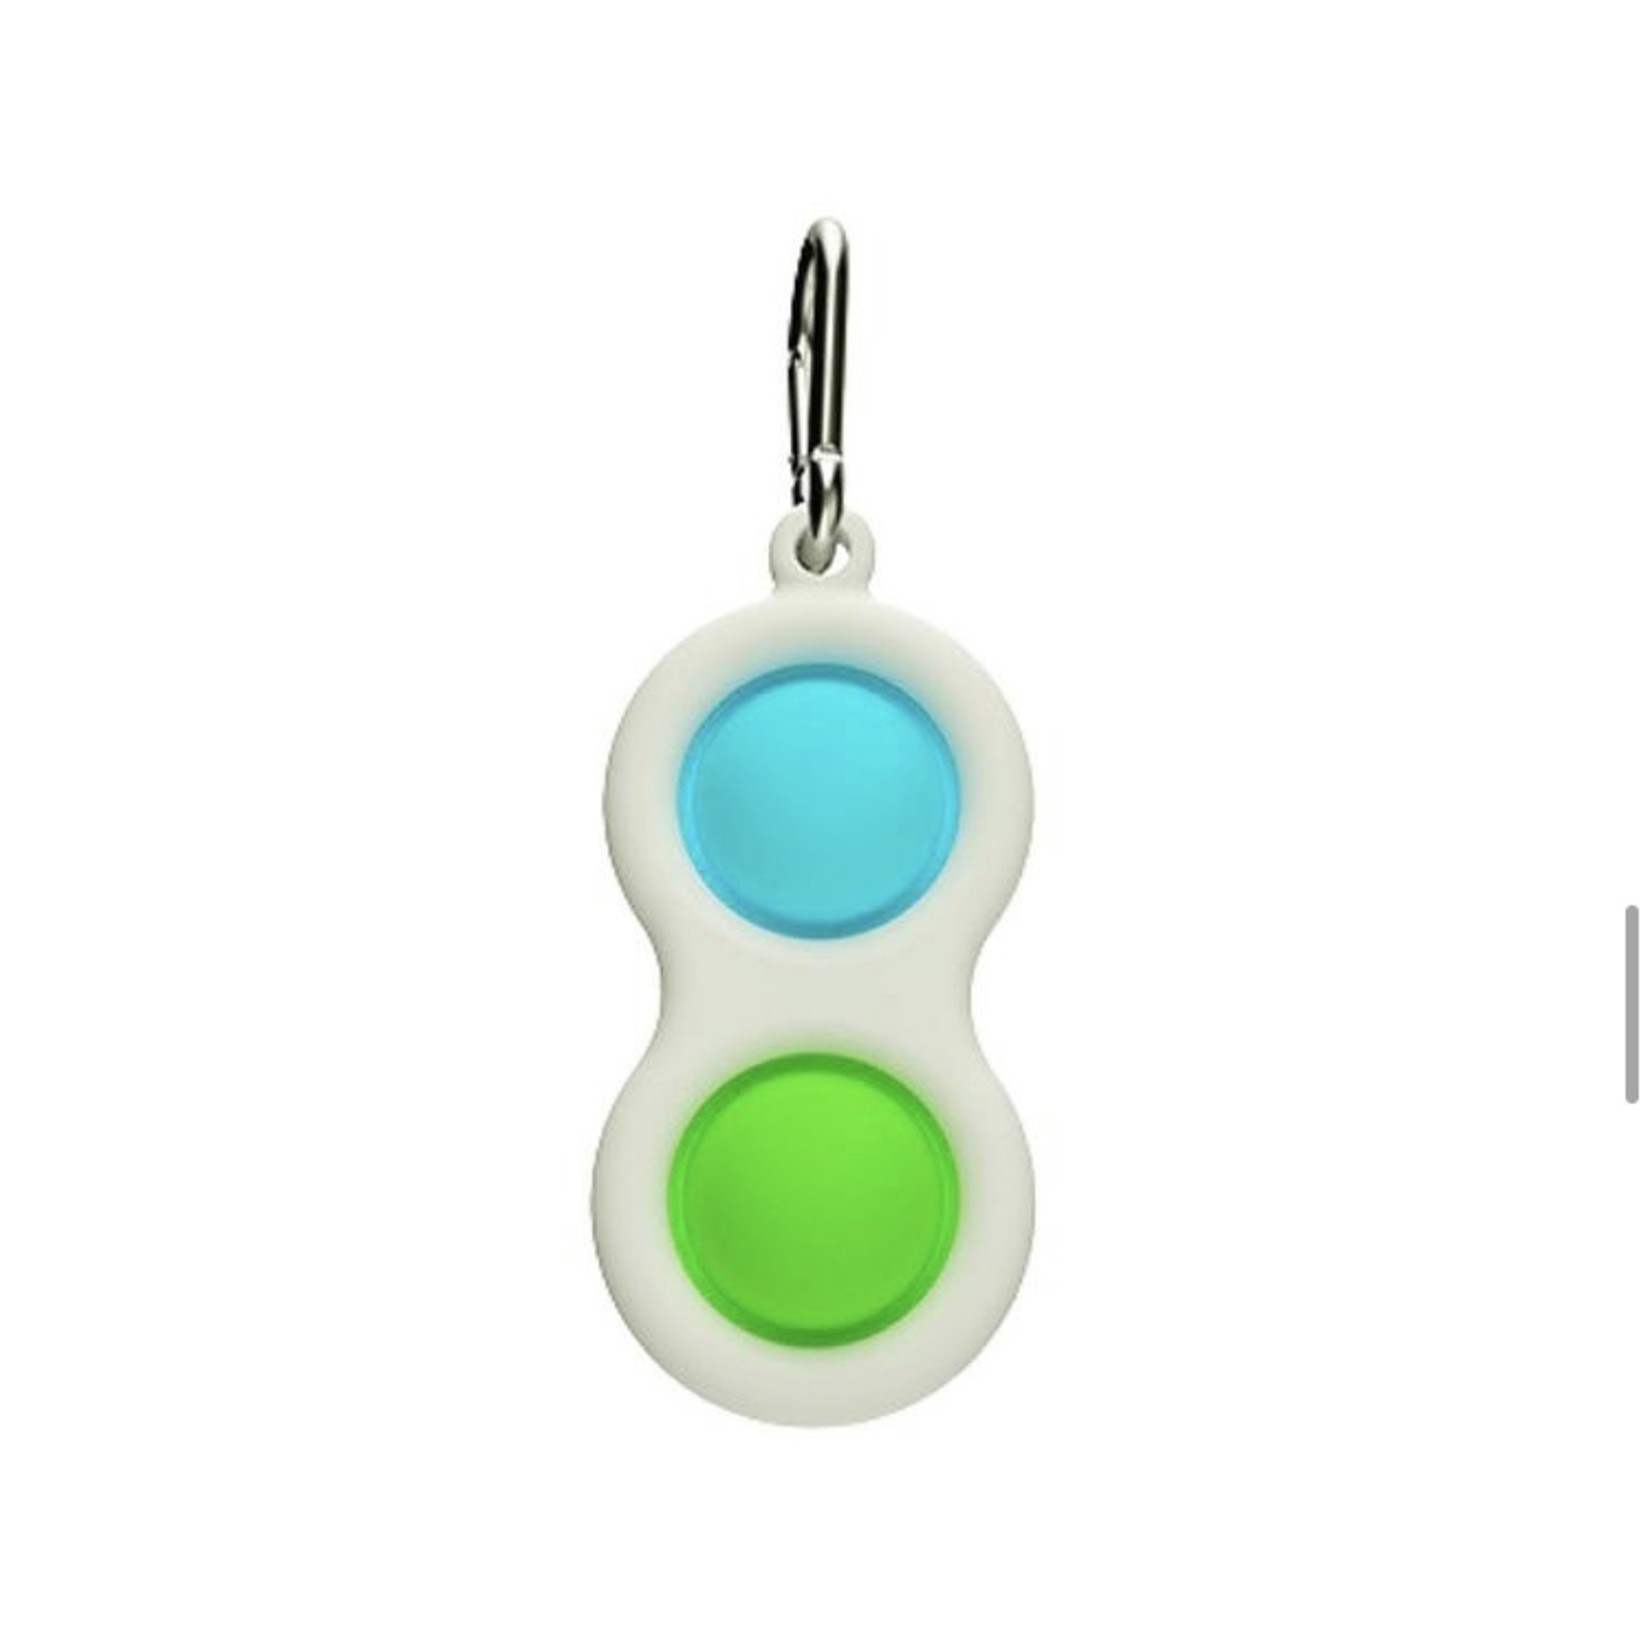 Family Products Australia Simple Dimple Blue/Green